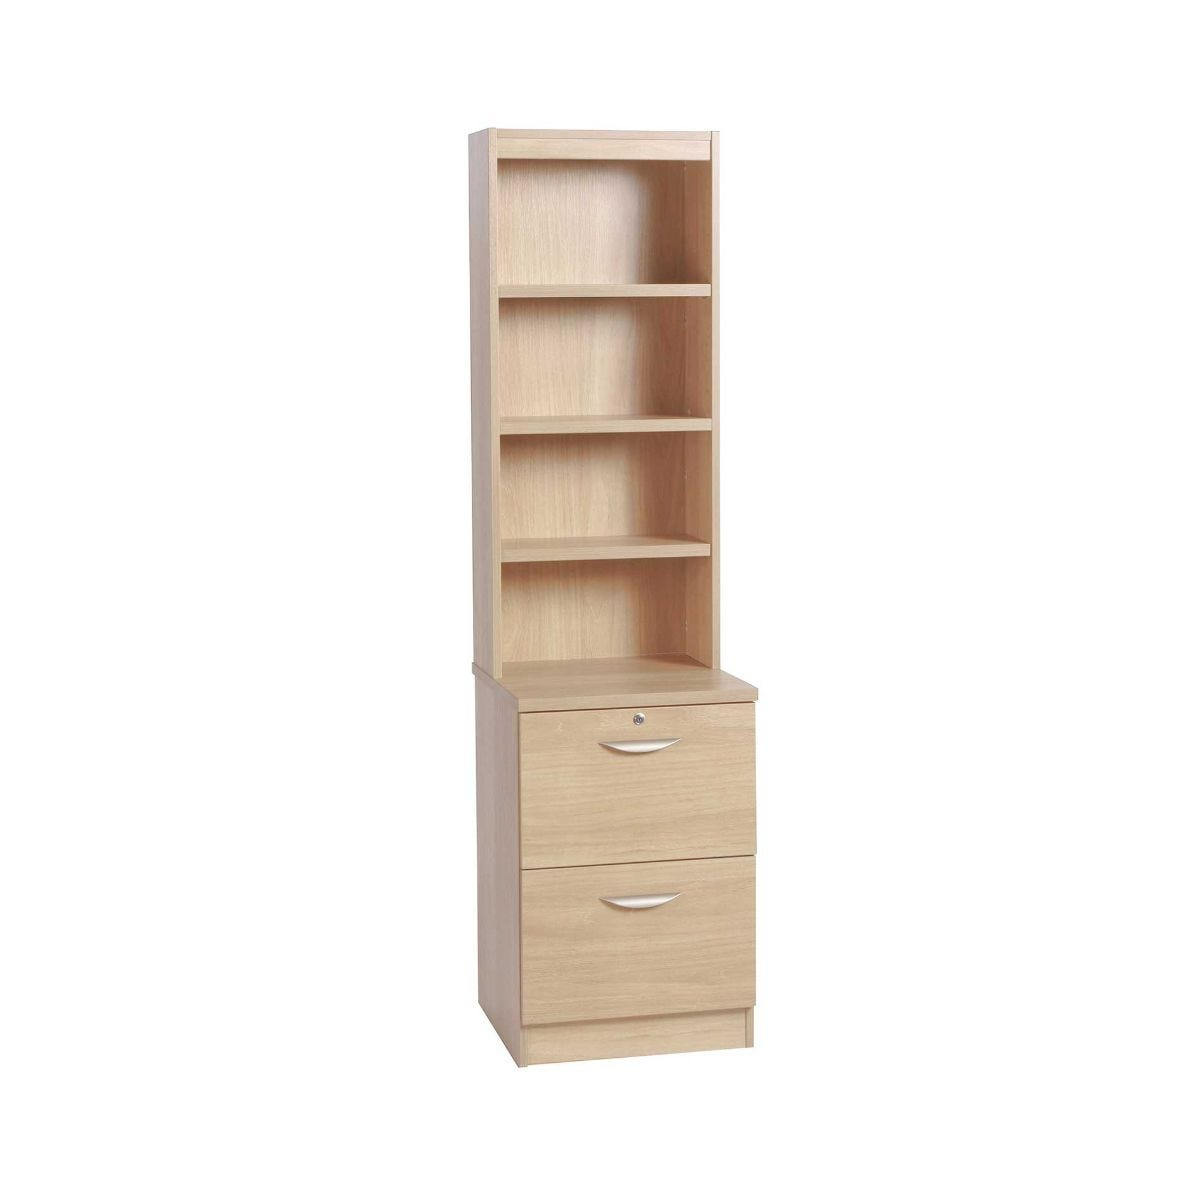 R White 2 Drawer Filing Cabinet With Overshelving, Beech Wood Grain